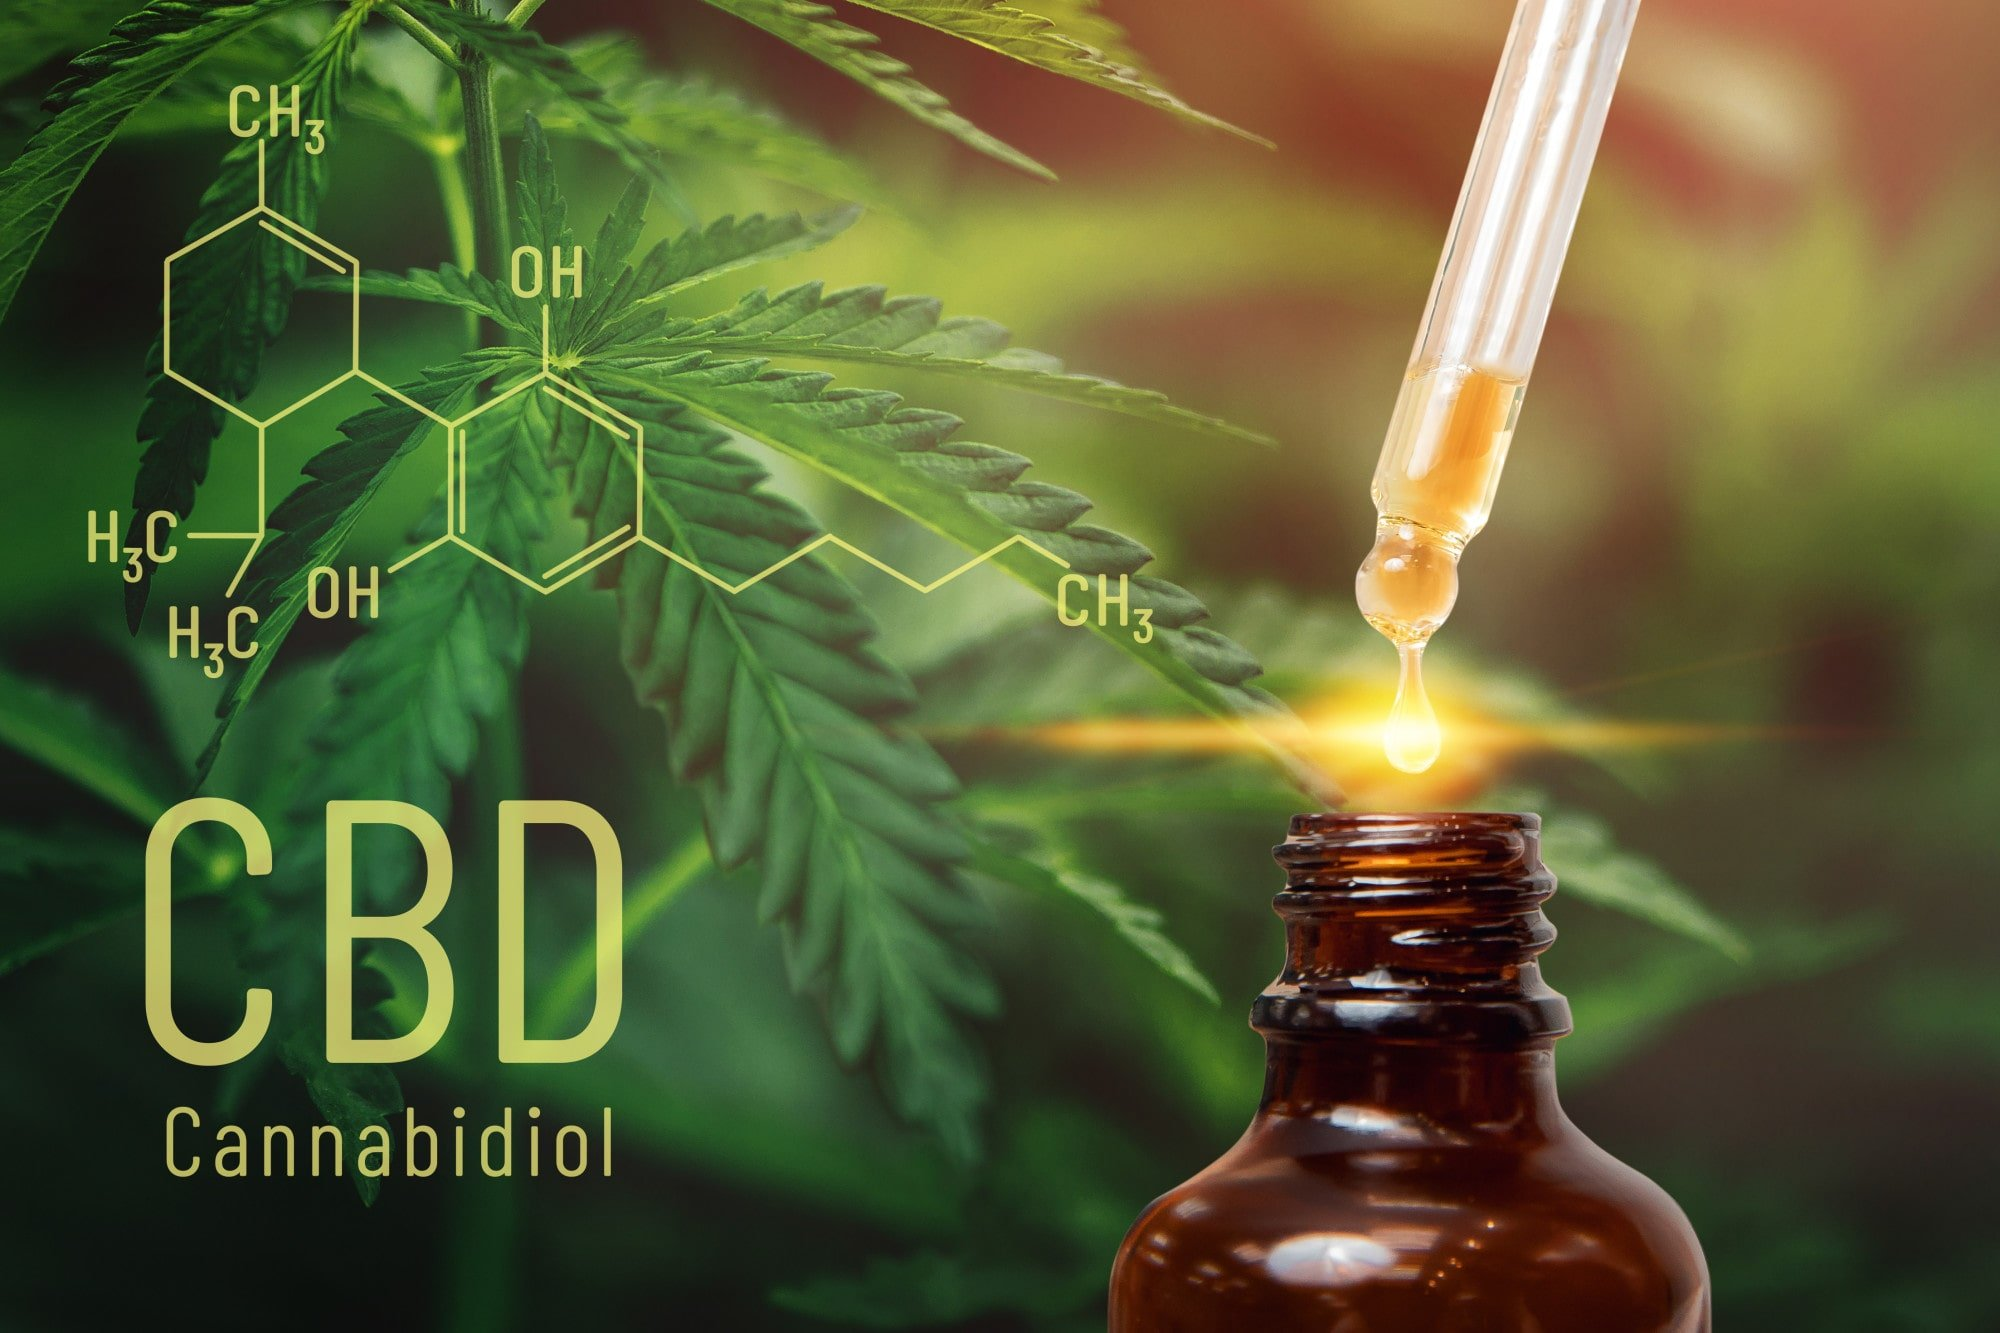 How to consume cbd